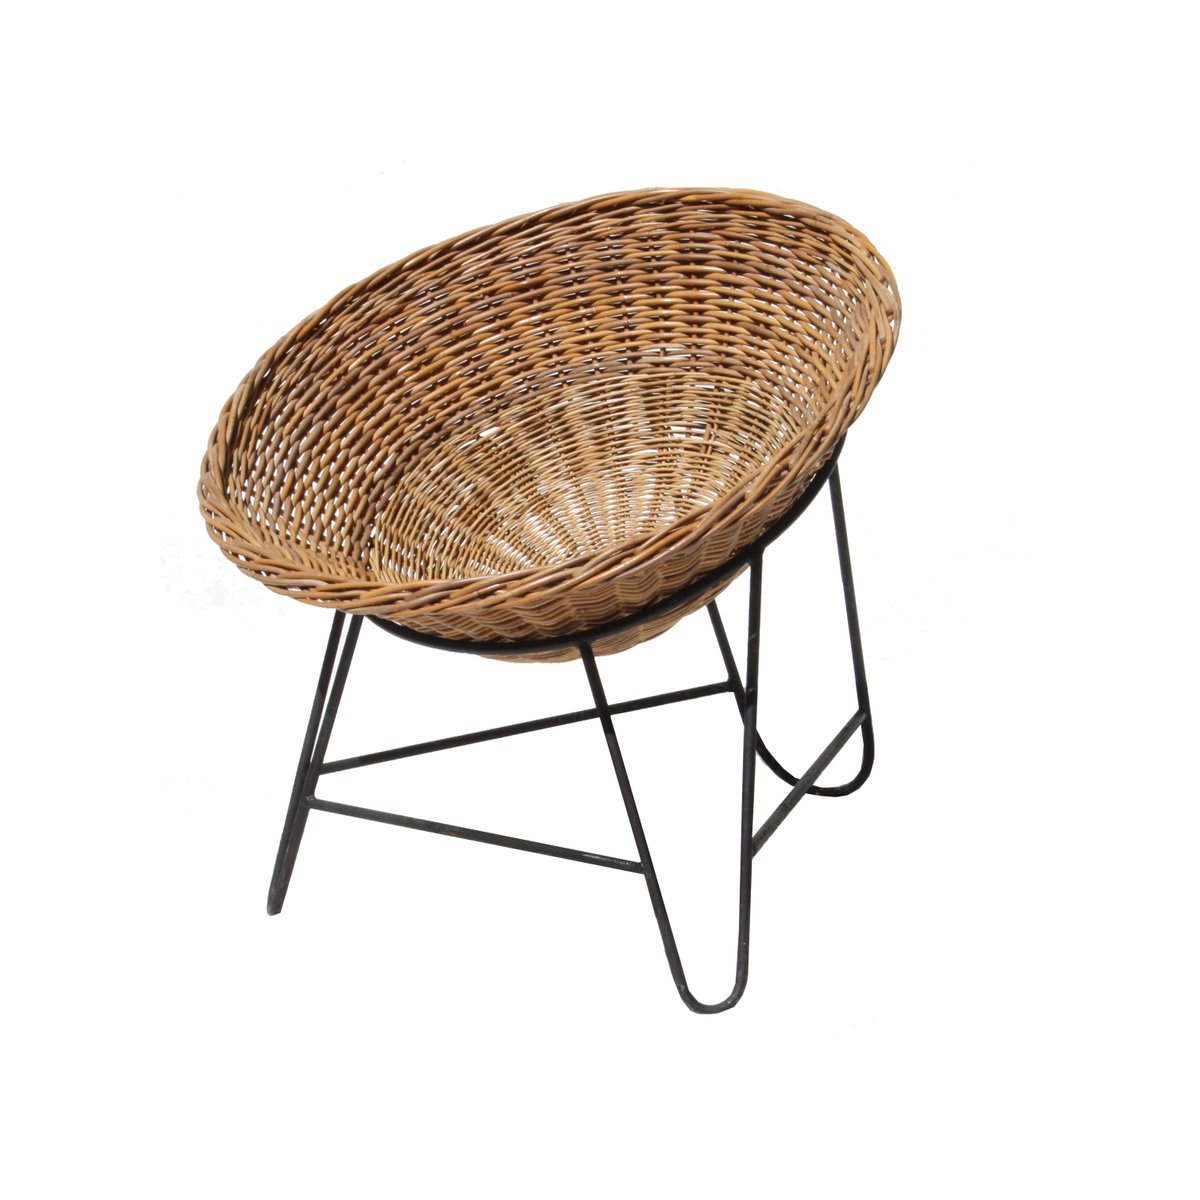 mid-century french rattan basket chair, 1950s for sale at pamono